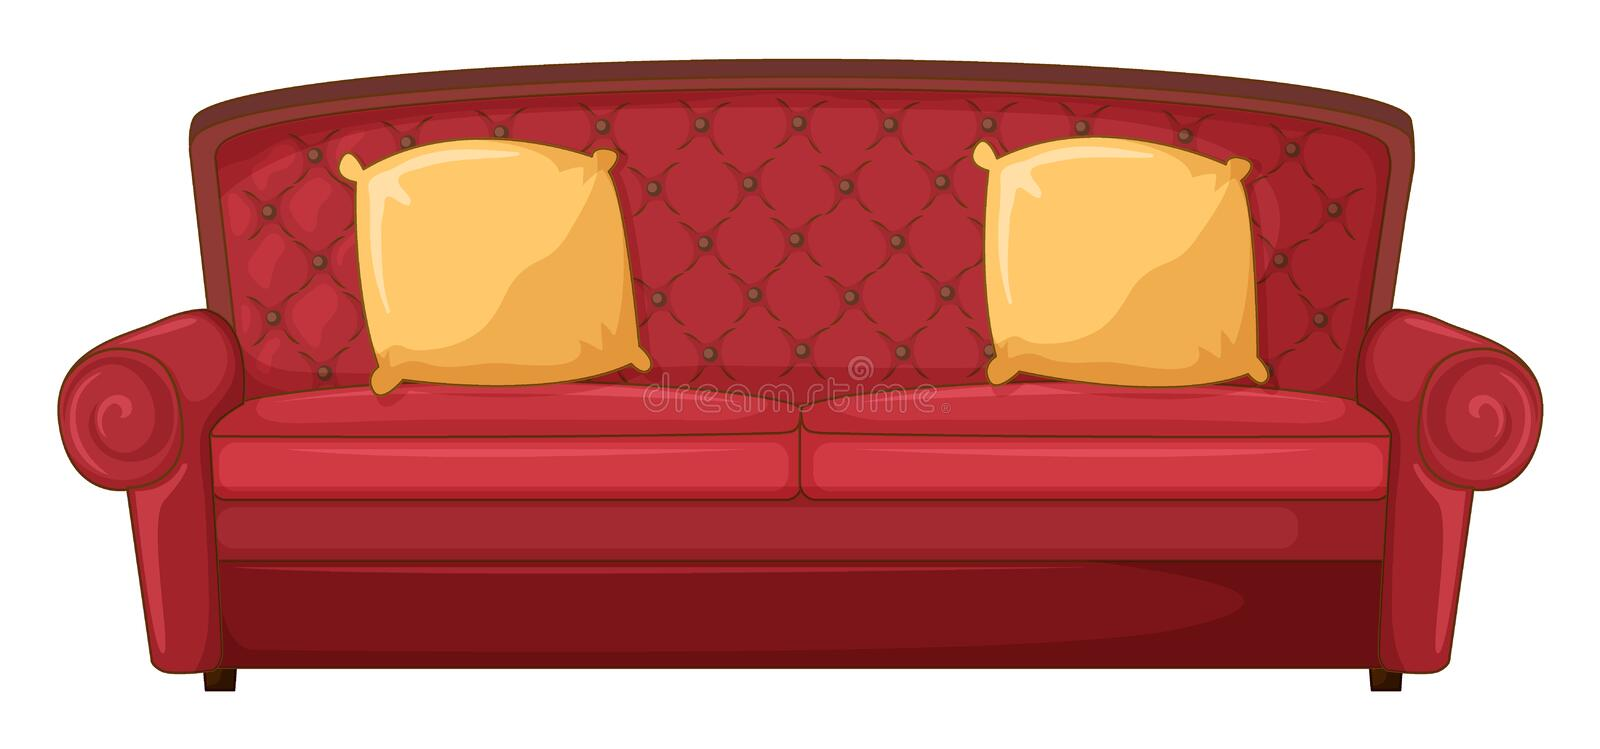 A red sofa and yellow cushions stock illustration image 33693125 Rotes sofa kiel